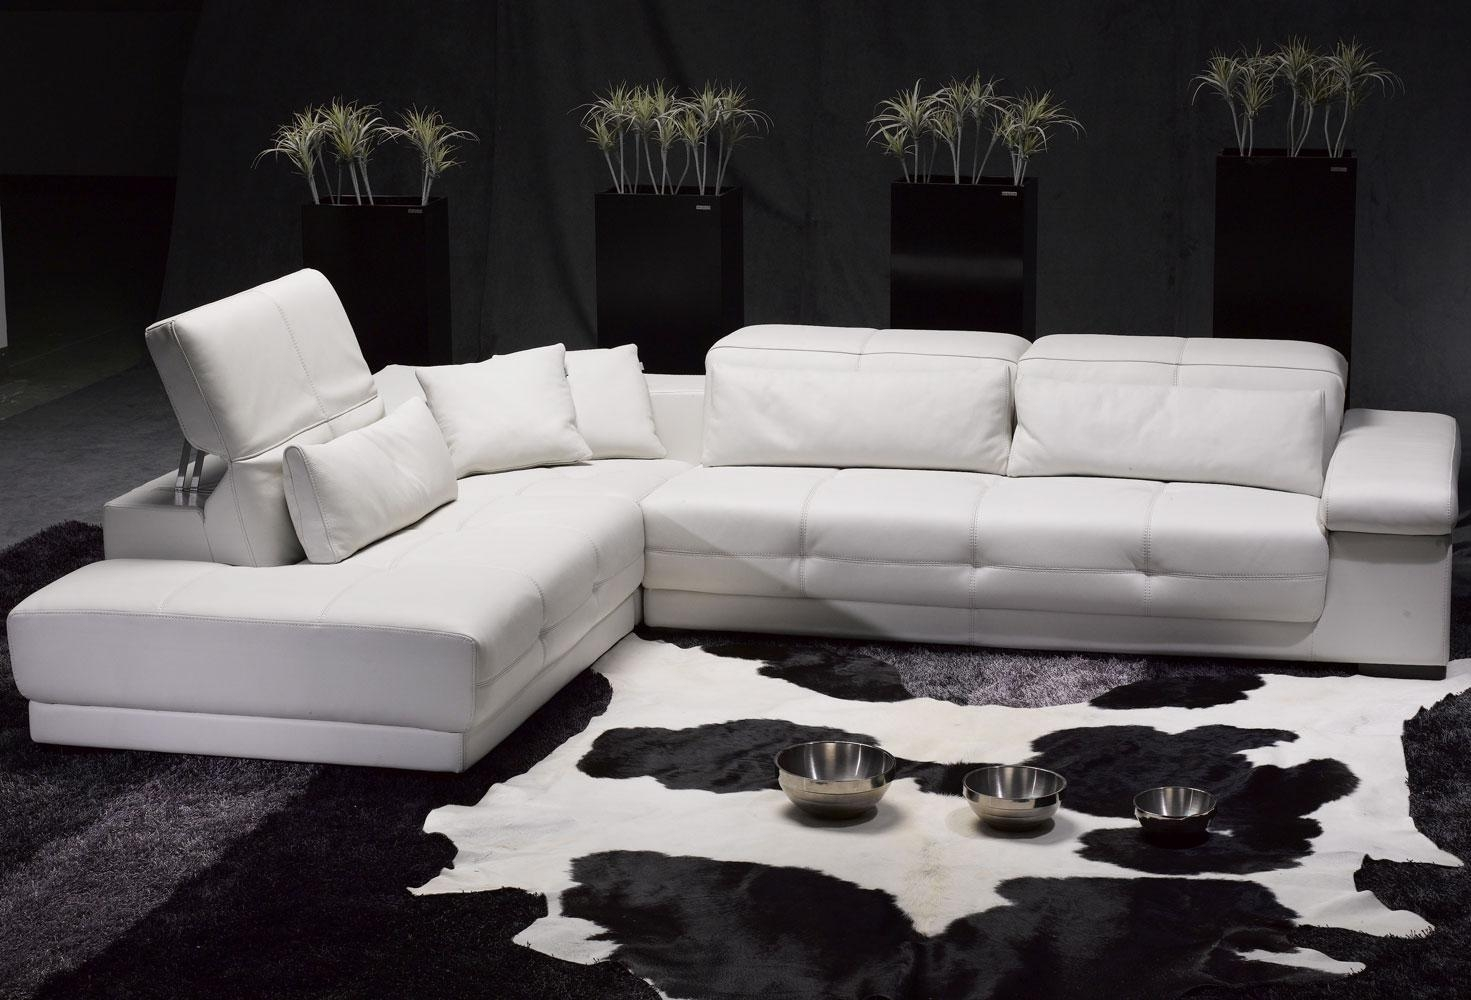 Living Room: Comfortable White Sectional Sofa For Elegant Living Throughout Leather Sofa Sectionals For Sale (View 14 of 20)